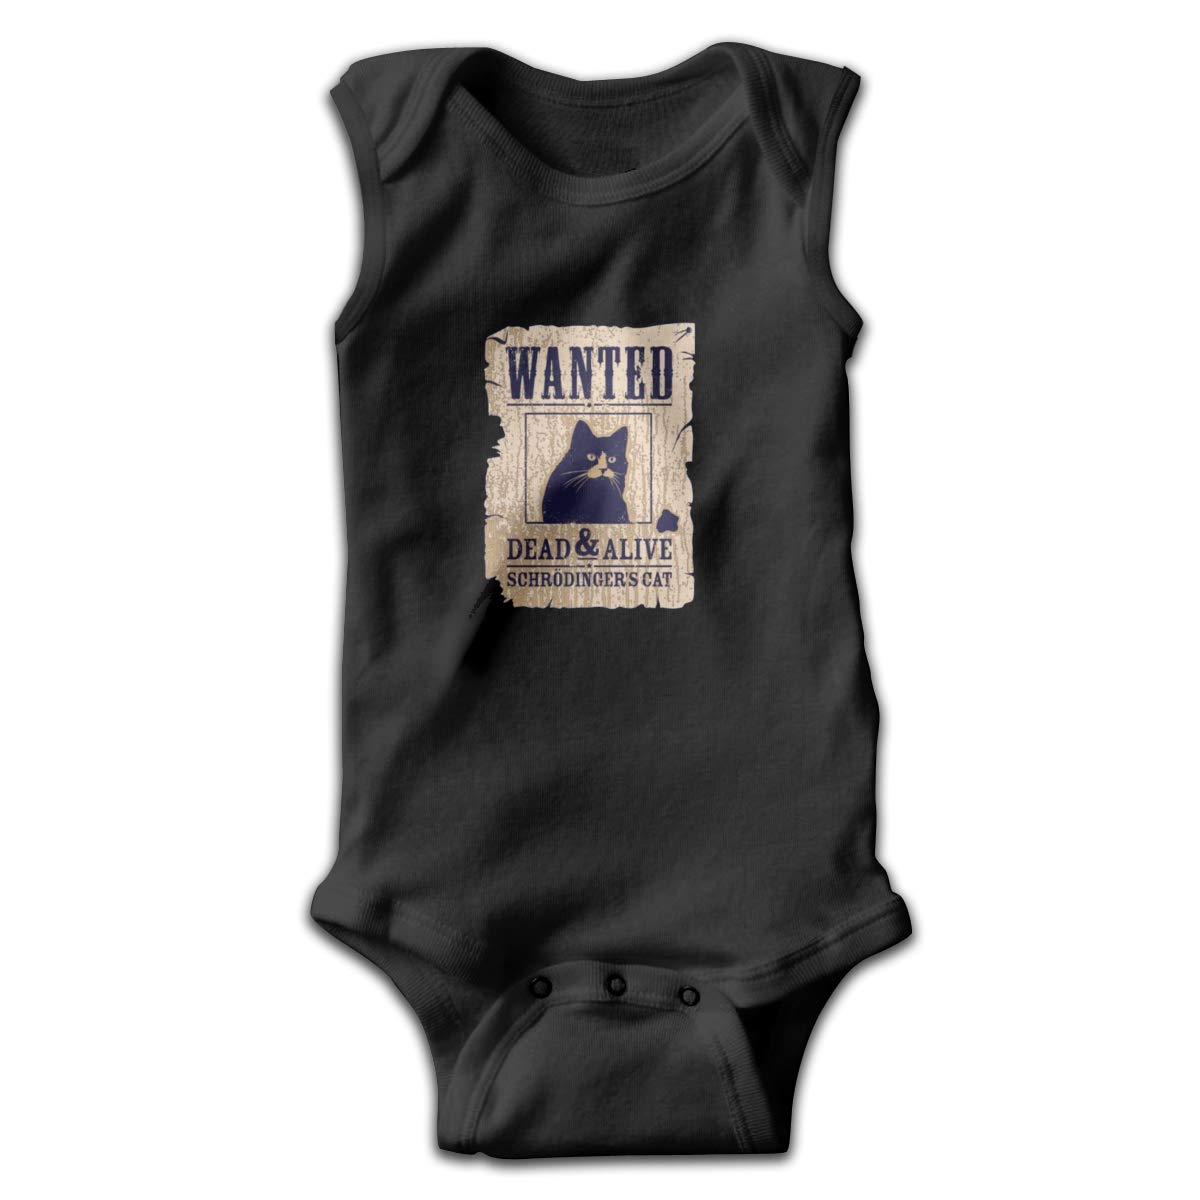 Wanted Dead and Alive Smalls Baby Onesie,Infant Bodysuit Black